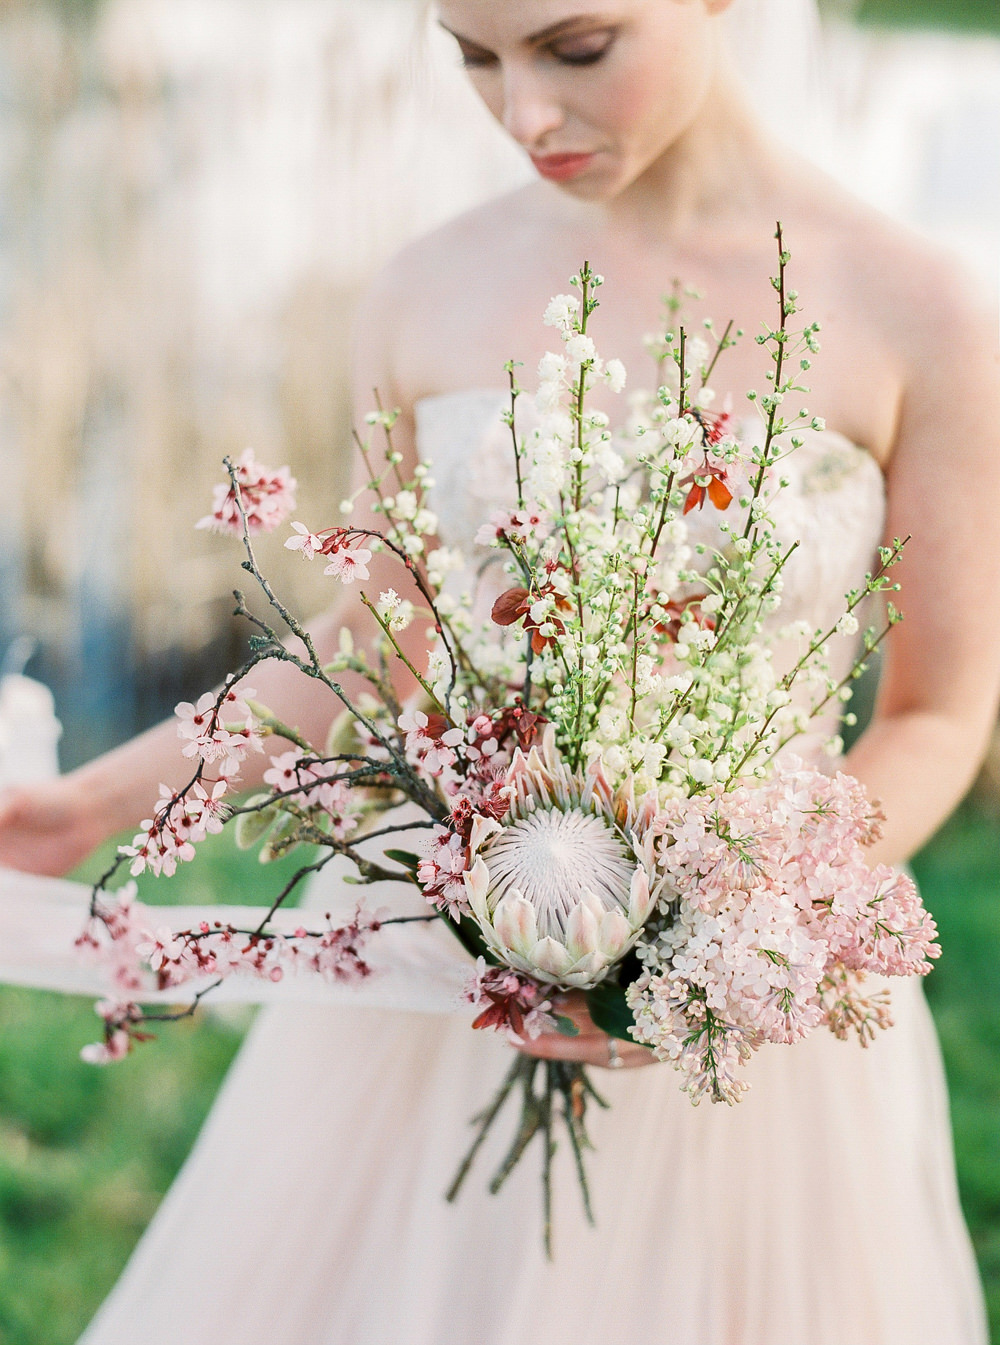 Statement bouquet and soft pink wedding dress